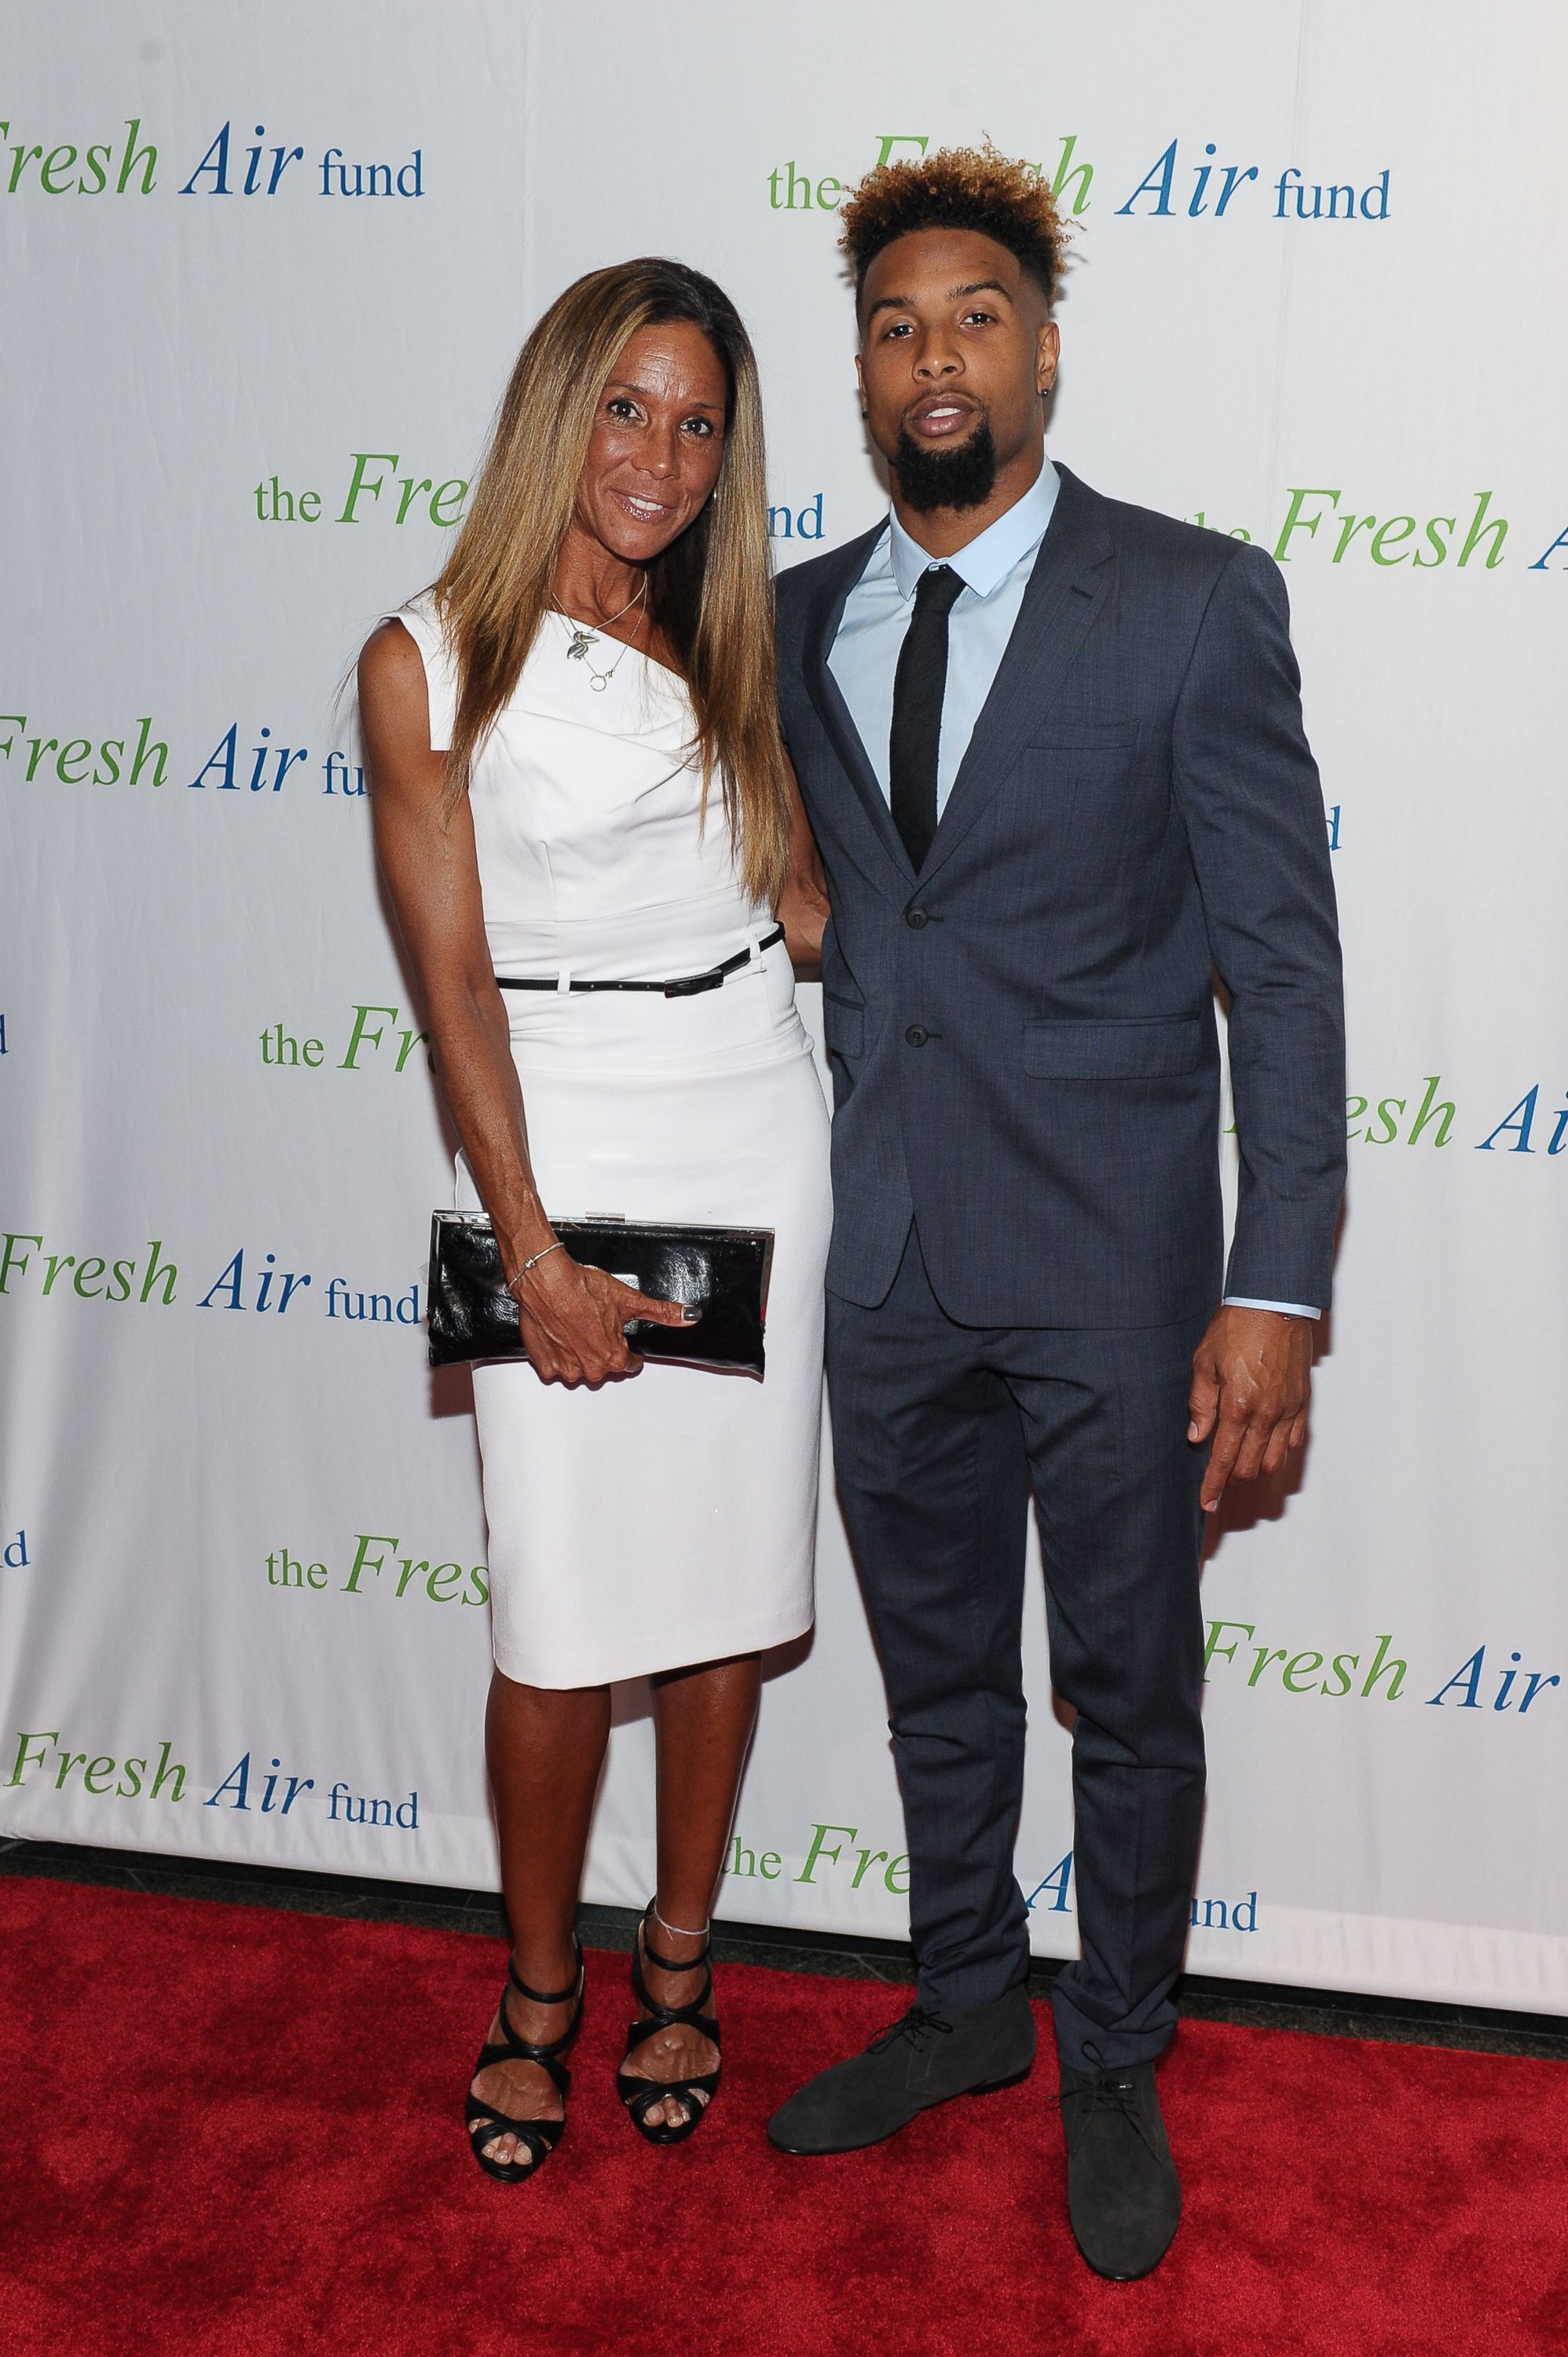 Odell Beckham Jr. and his mother Heather Van Norman attend Fresh Air Fund's Salute to American Heroes in 2015 in New York City | Source: Getty Images